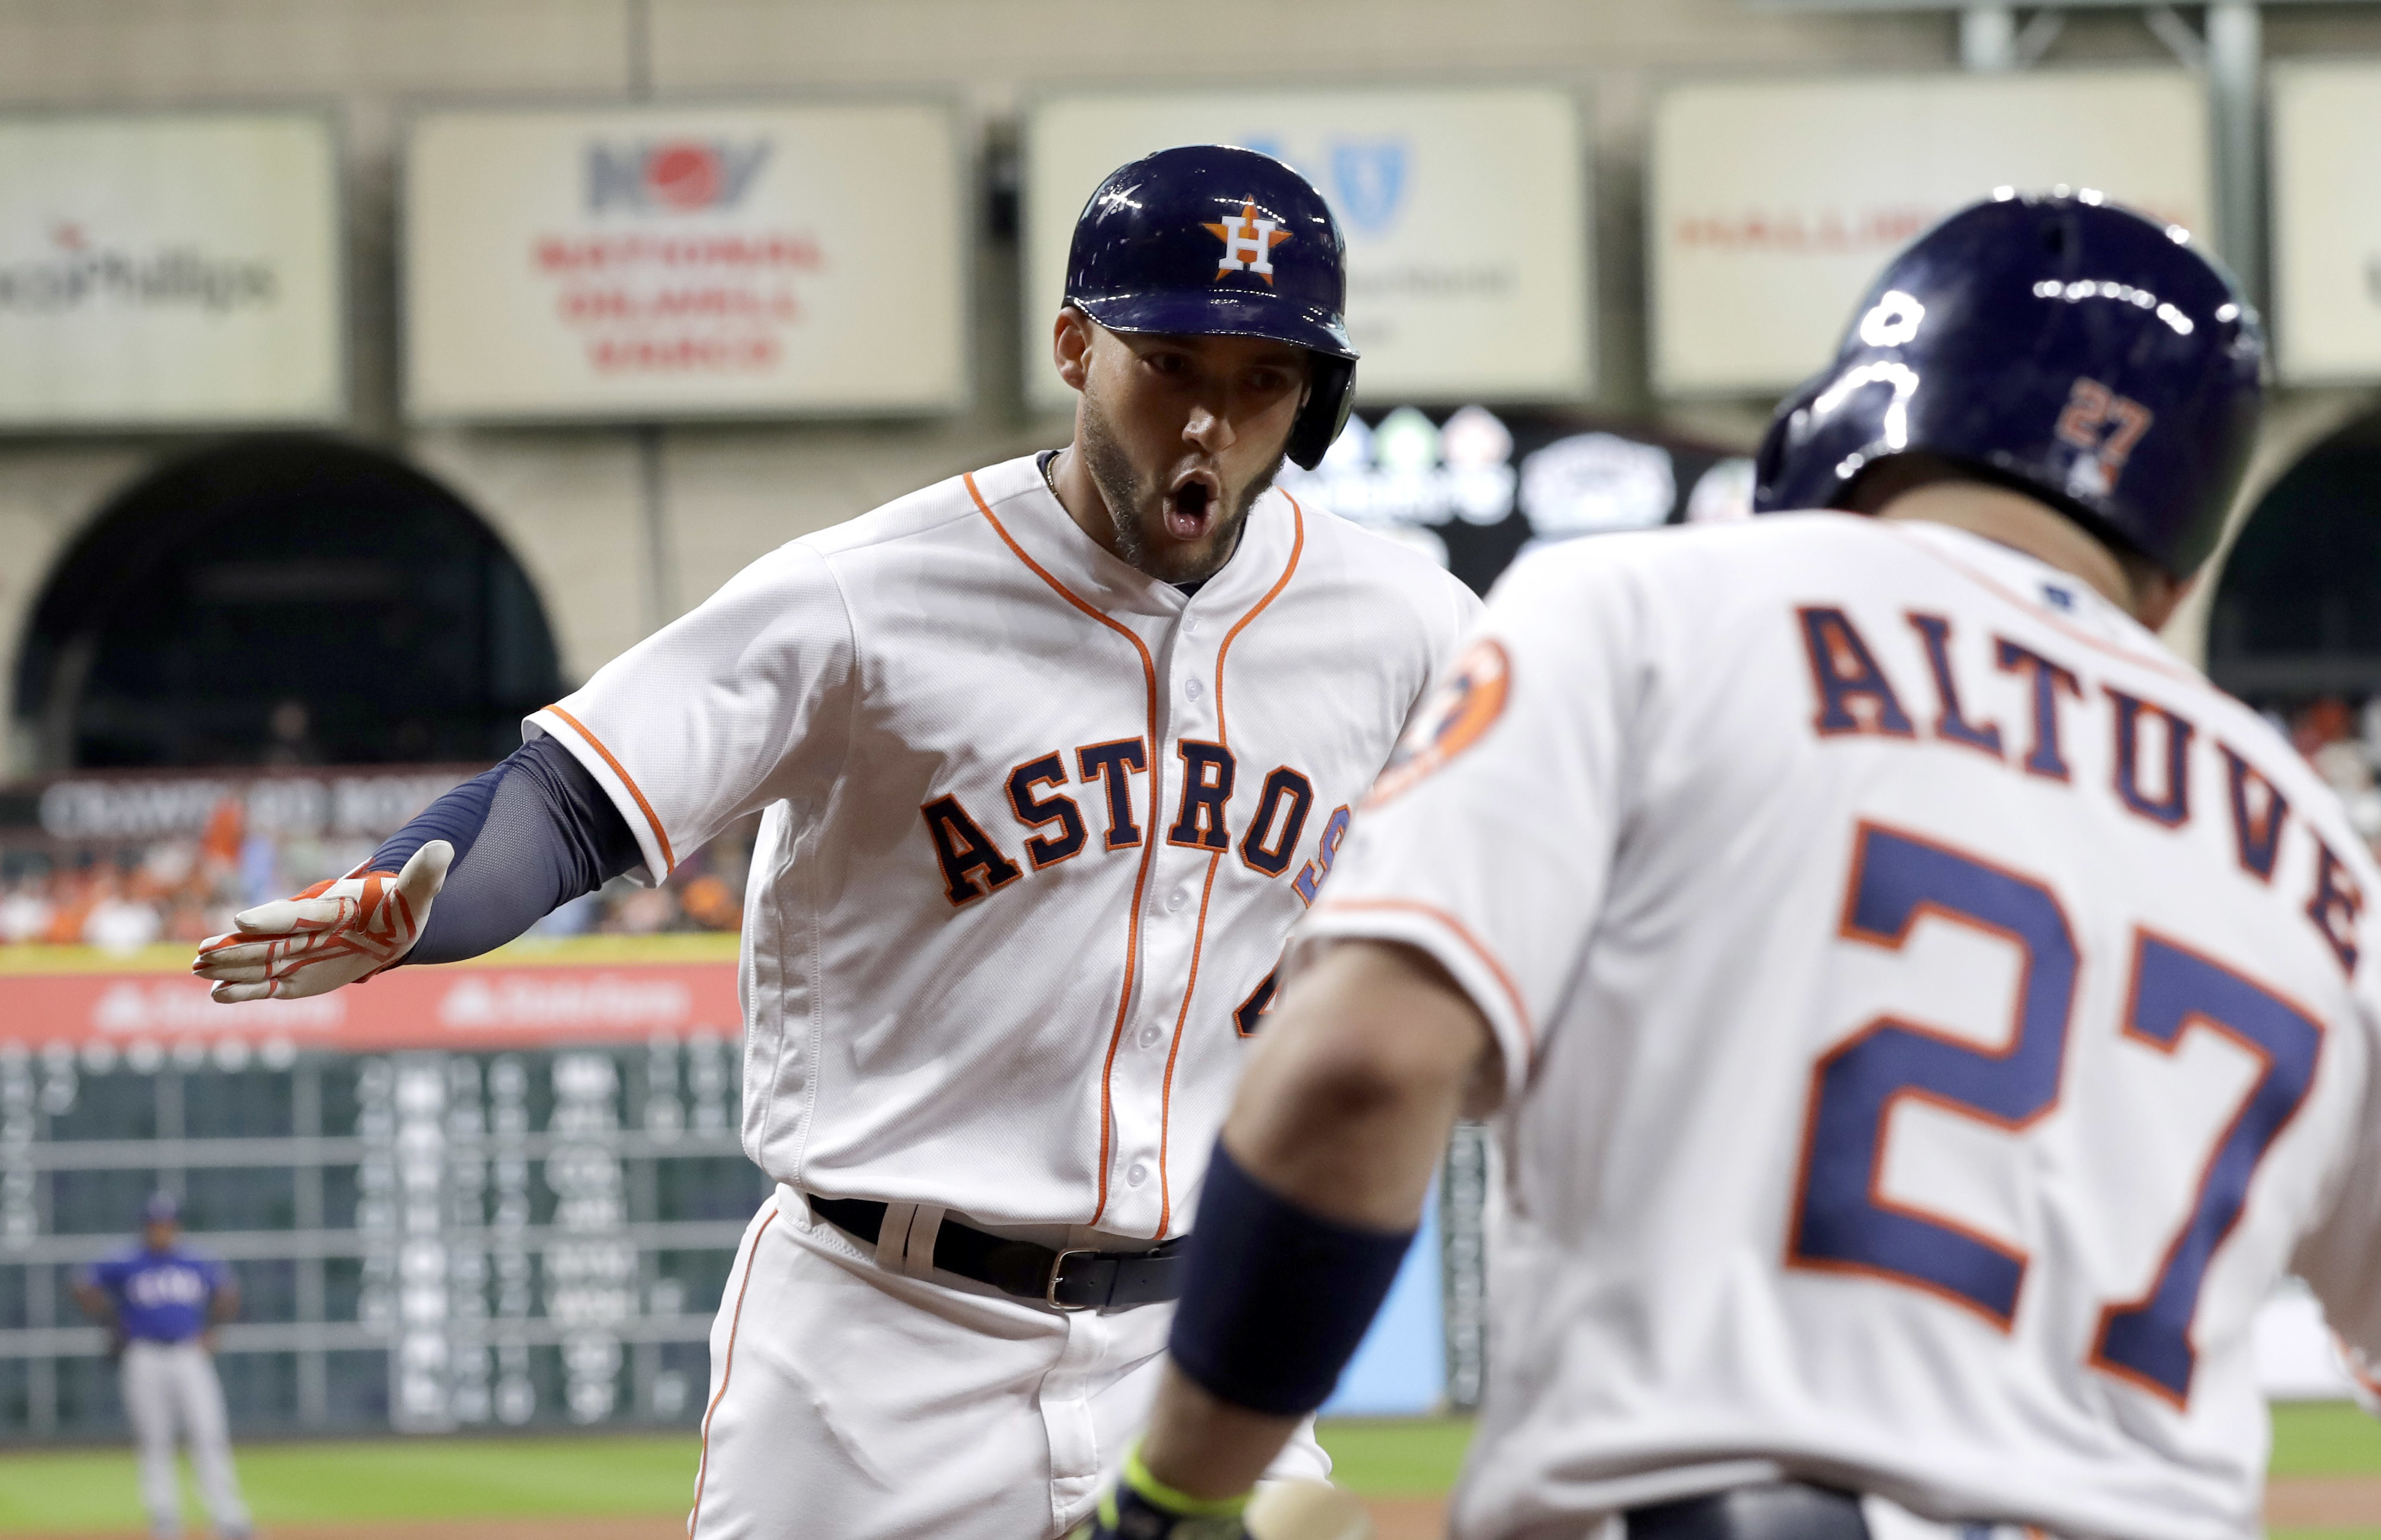 Houston Astros' George Springer, left, celebrates with Jose Altuve (27) after hitting a home run against the Texas Rangers during the first inning of a baseball game Wednesday, Sept. 14, 2016, in Houston. (AP Photo/David J. Phillip)